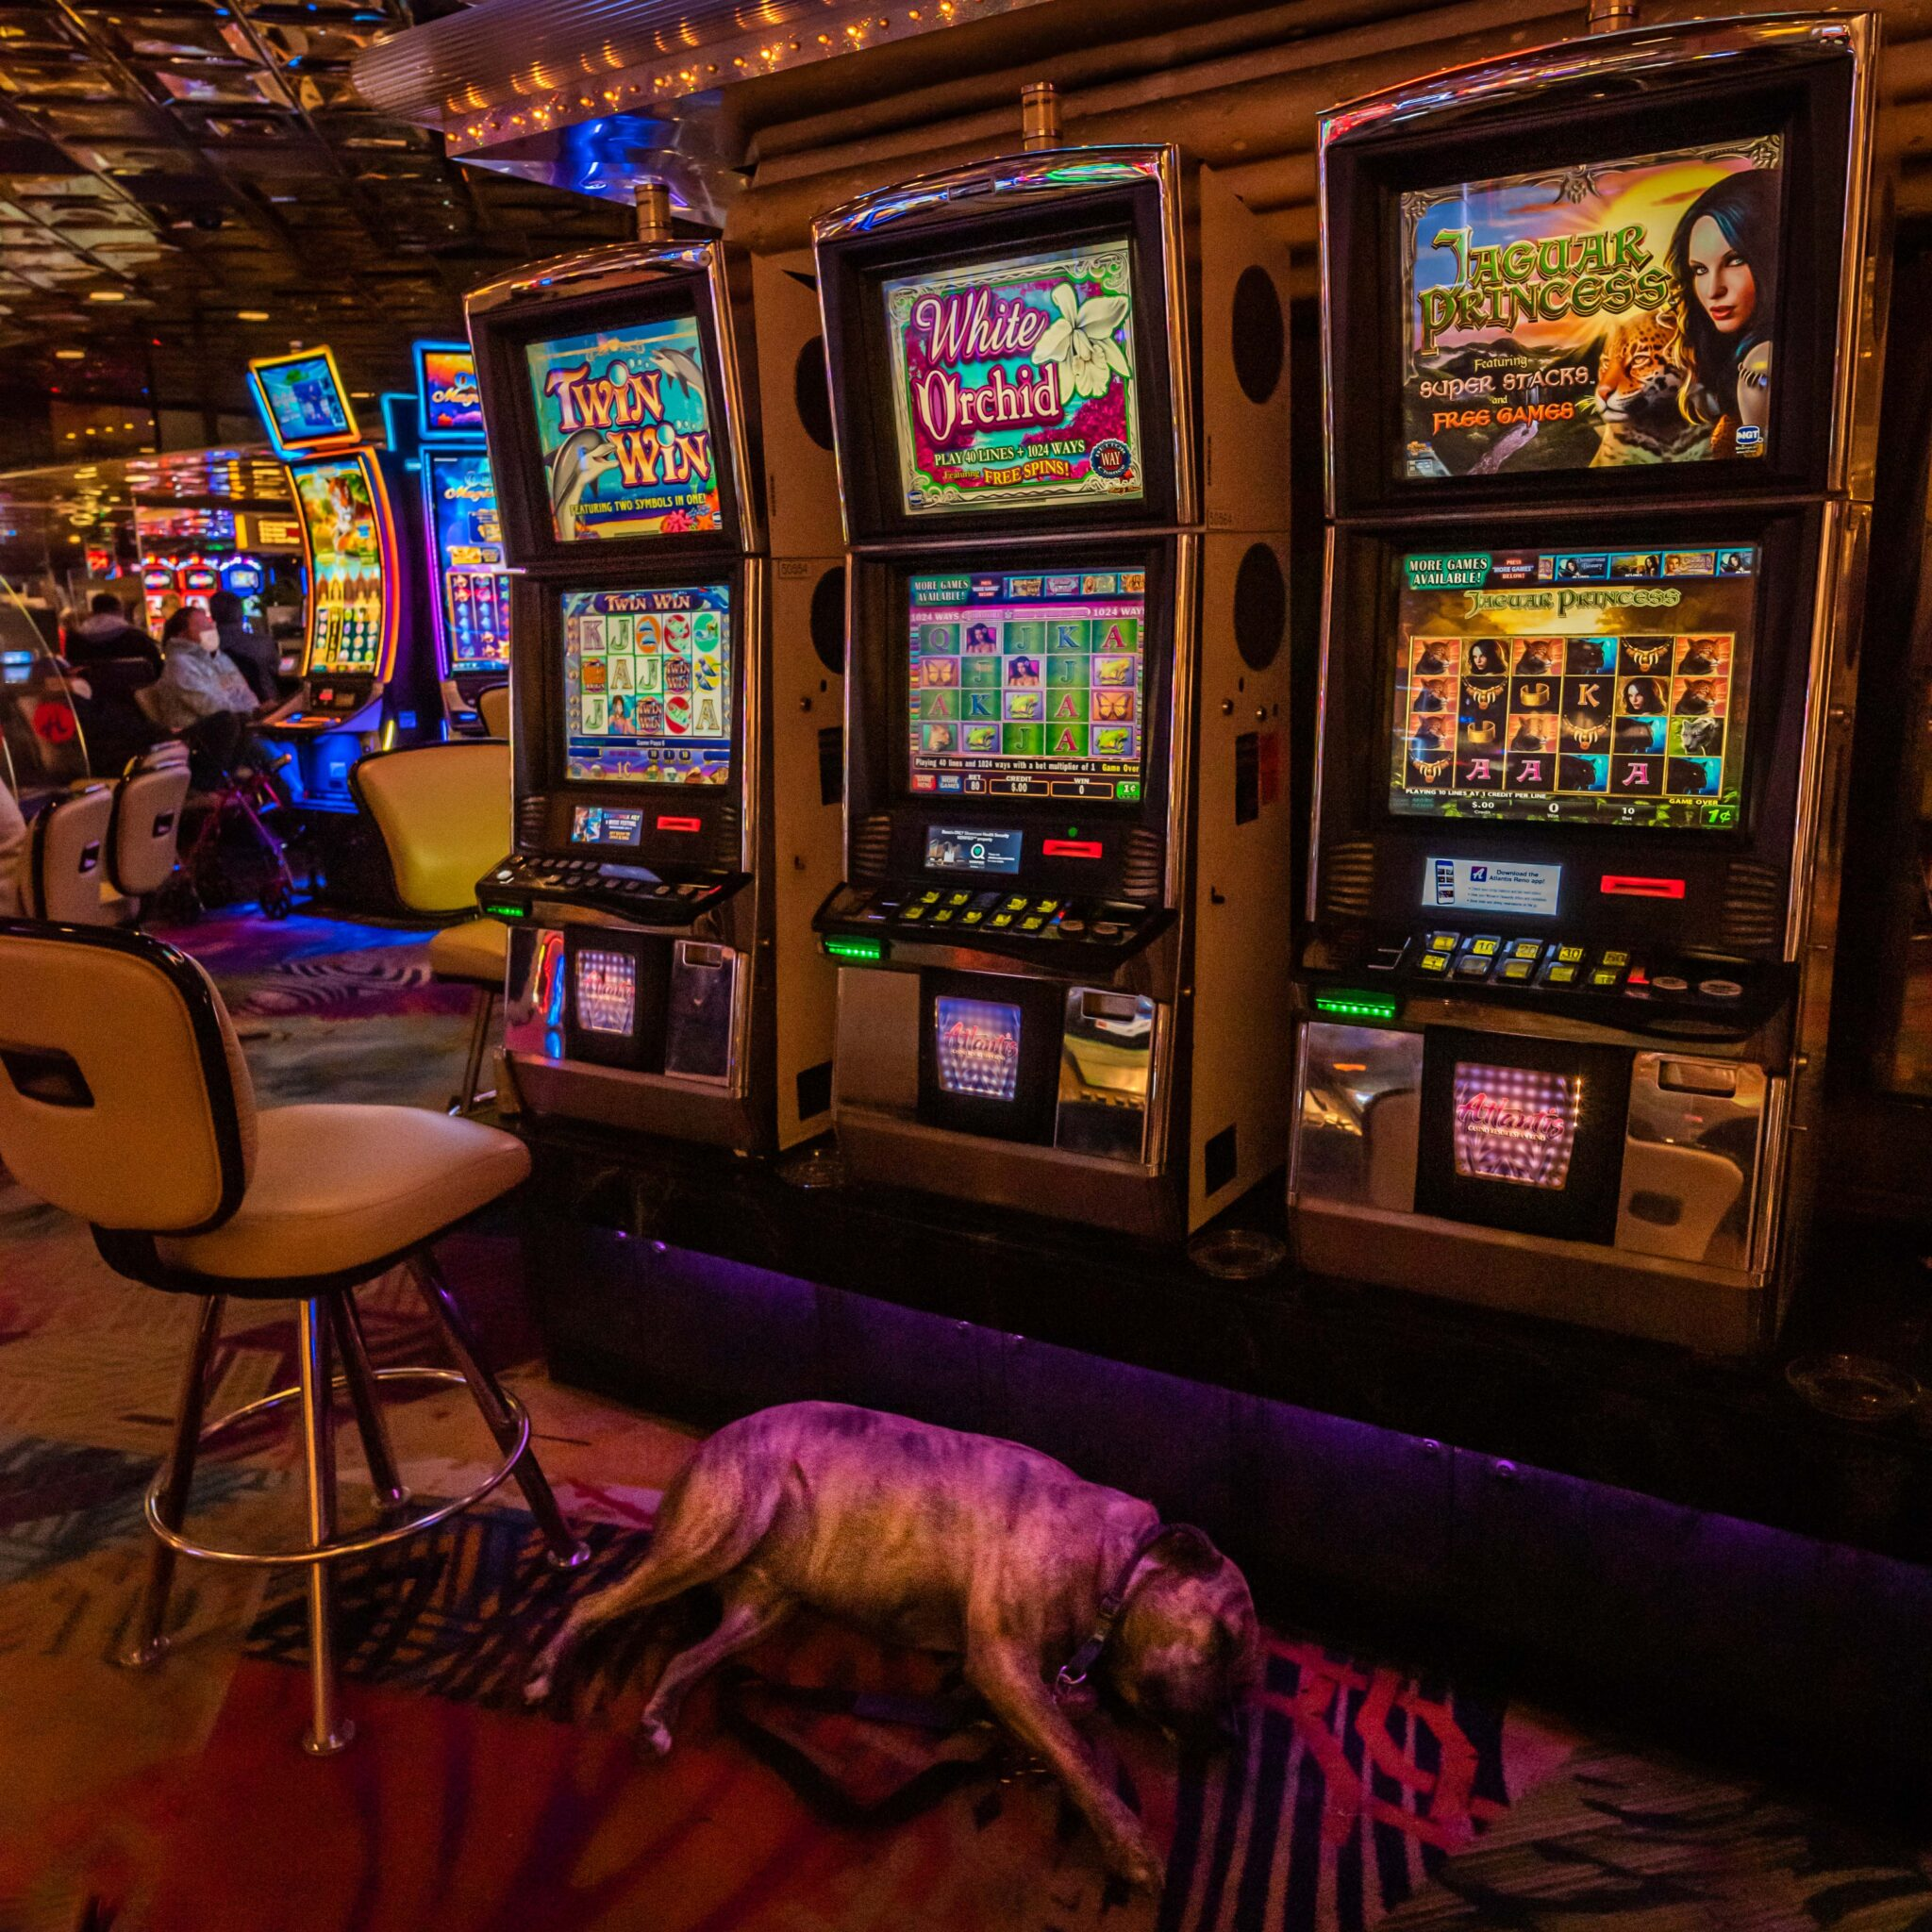 reno in transition, dog, sleeping, funny, casino, floor, humorous, slot machines, chris allan, covid transition time for Reno